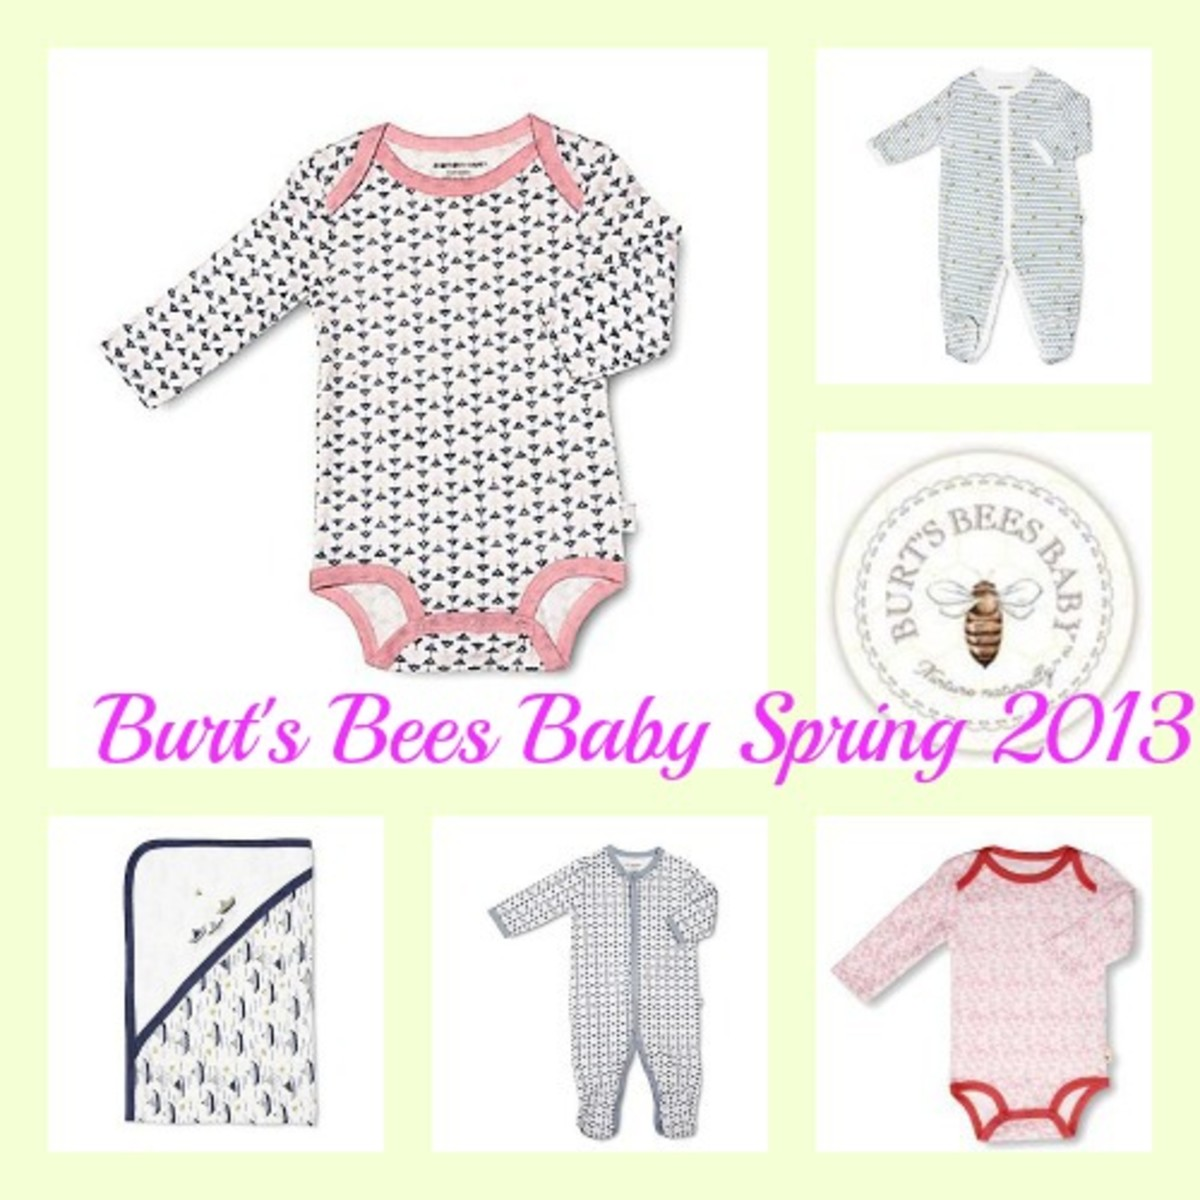 Burt's Bees Baby Preview